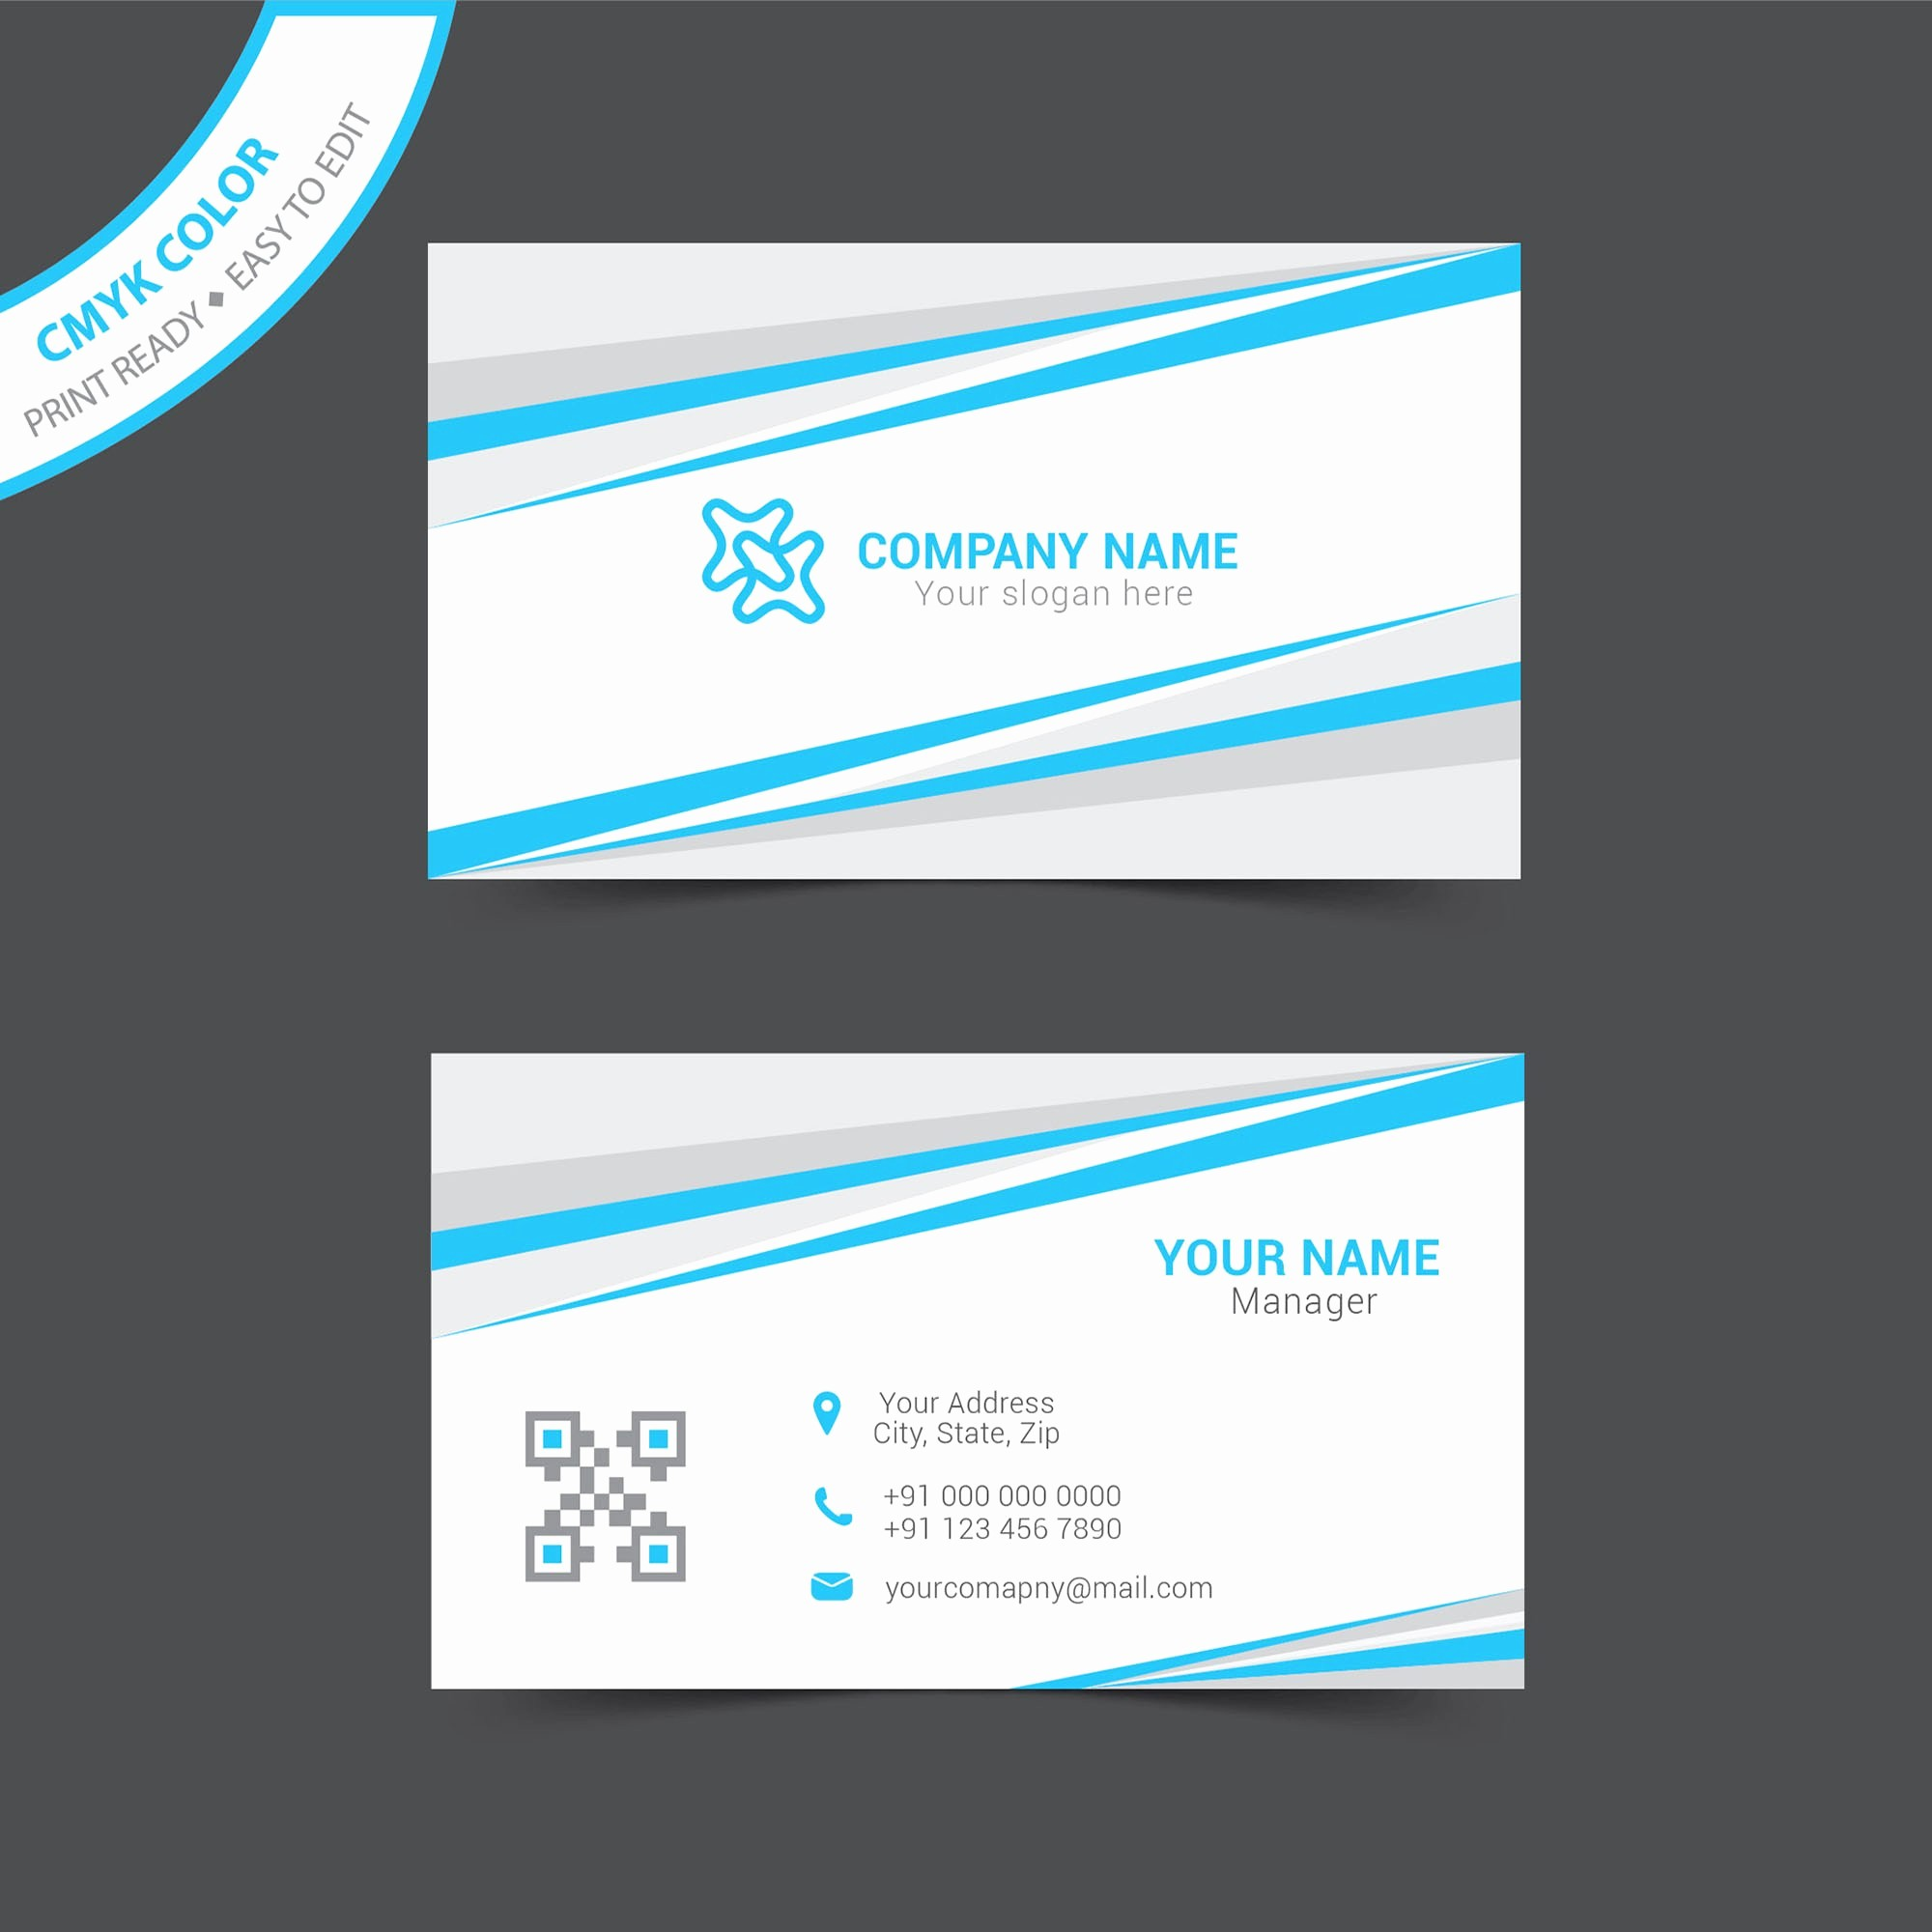 Microsoft Business Card Template Free Lovely Microsoft Business Card Template Free – Free Business Card